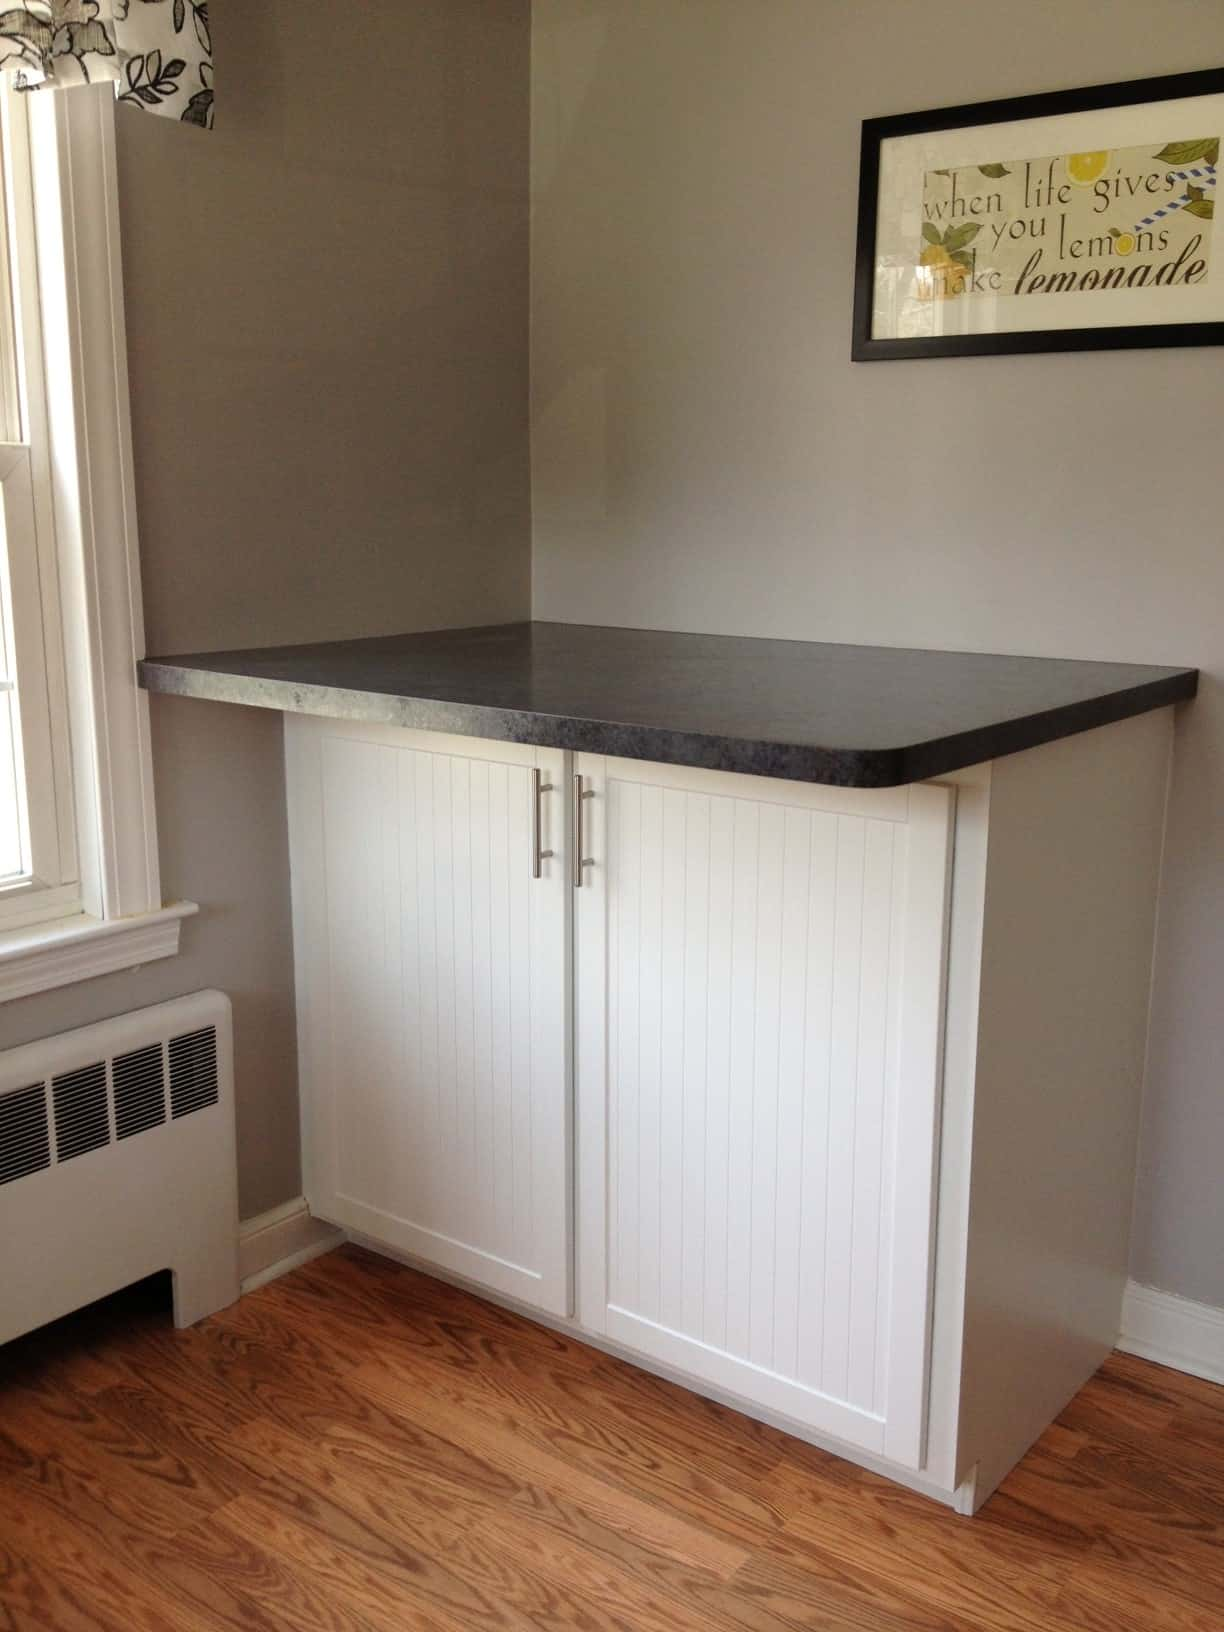 home depot financing kitchen remodel refinishing a sink ikea cabinets lowe 39s small